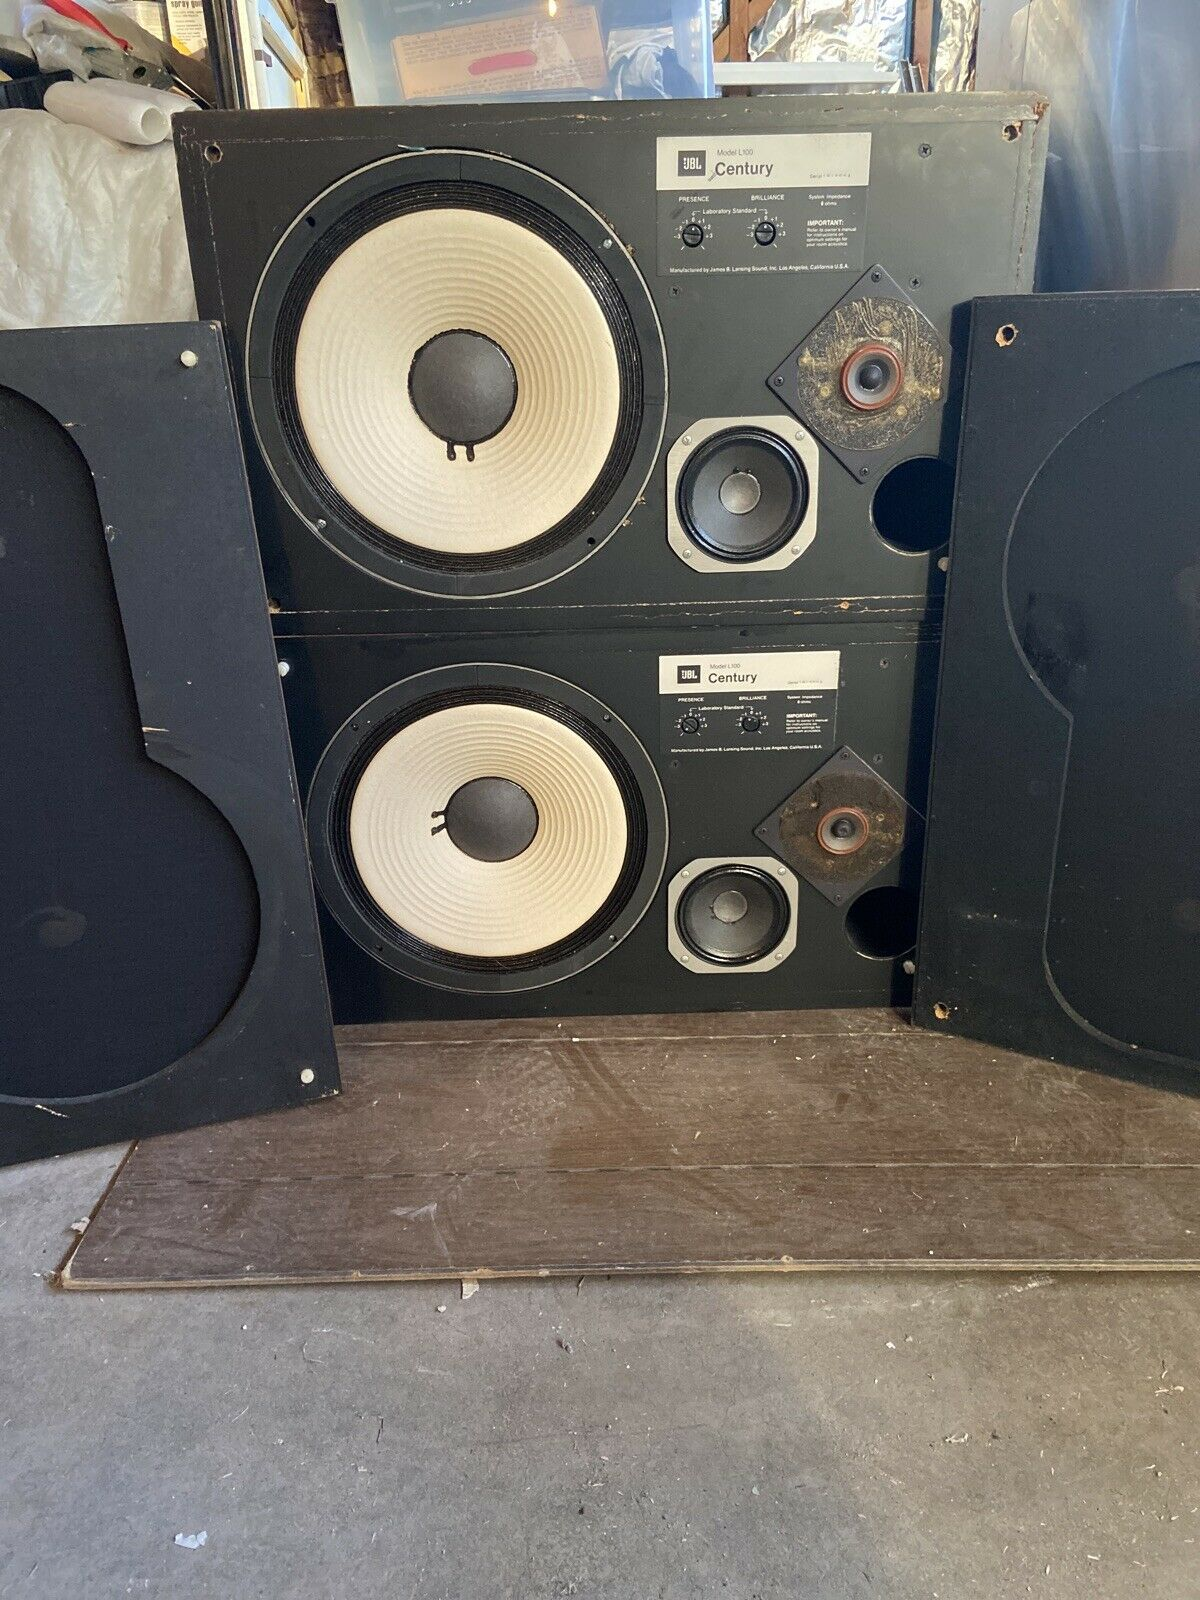 s l1600 - JBL Century L-100 (Pair) Not Tested But Look To Be In Good Condition